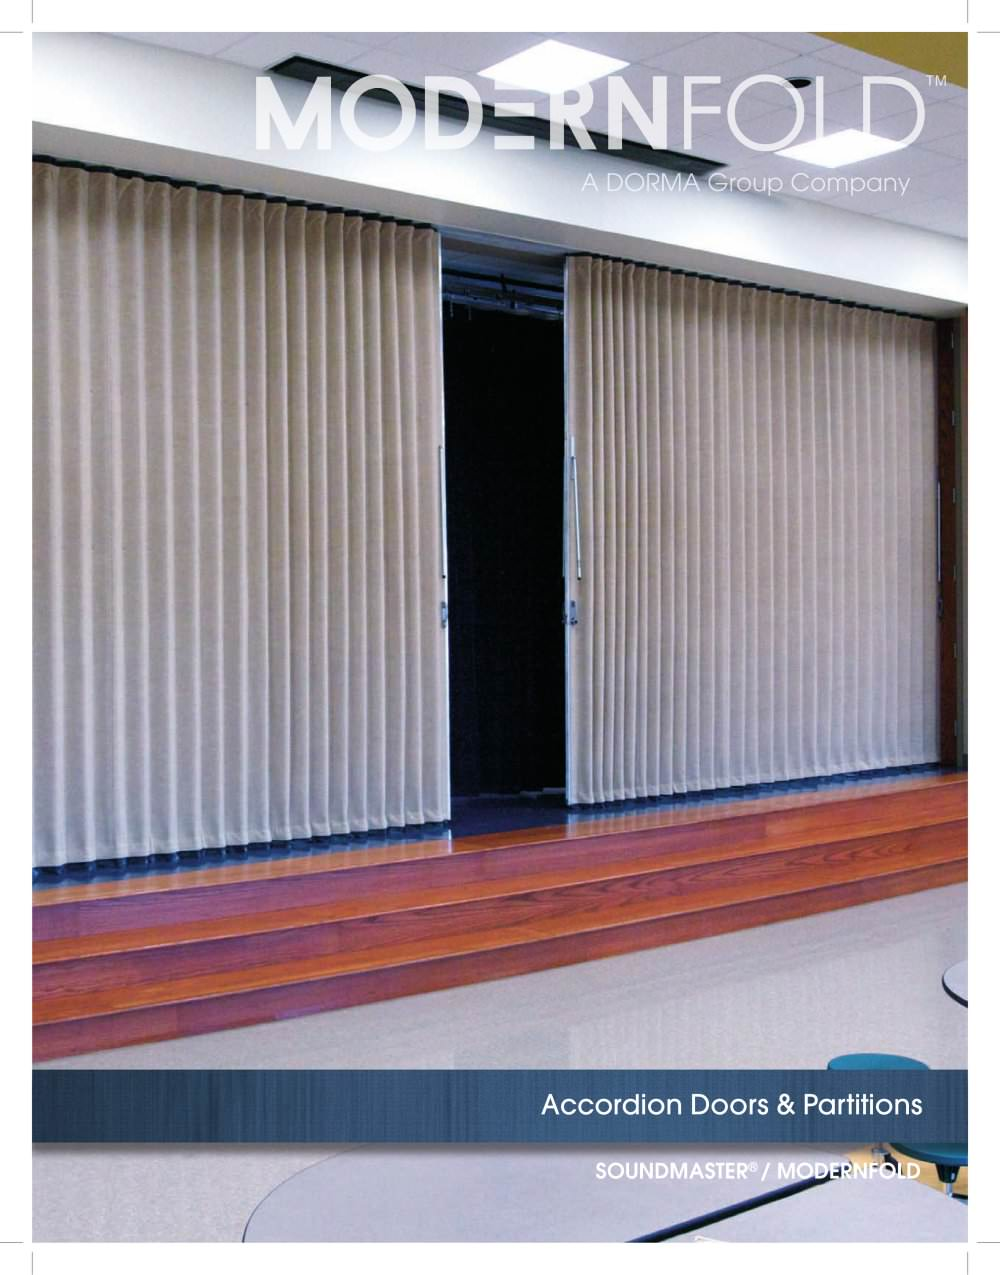 Soundmaster Modernfold Accordion Doors Partitions Modernfold